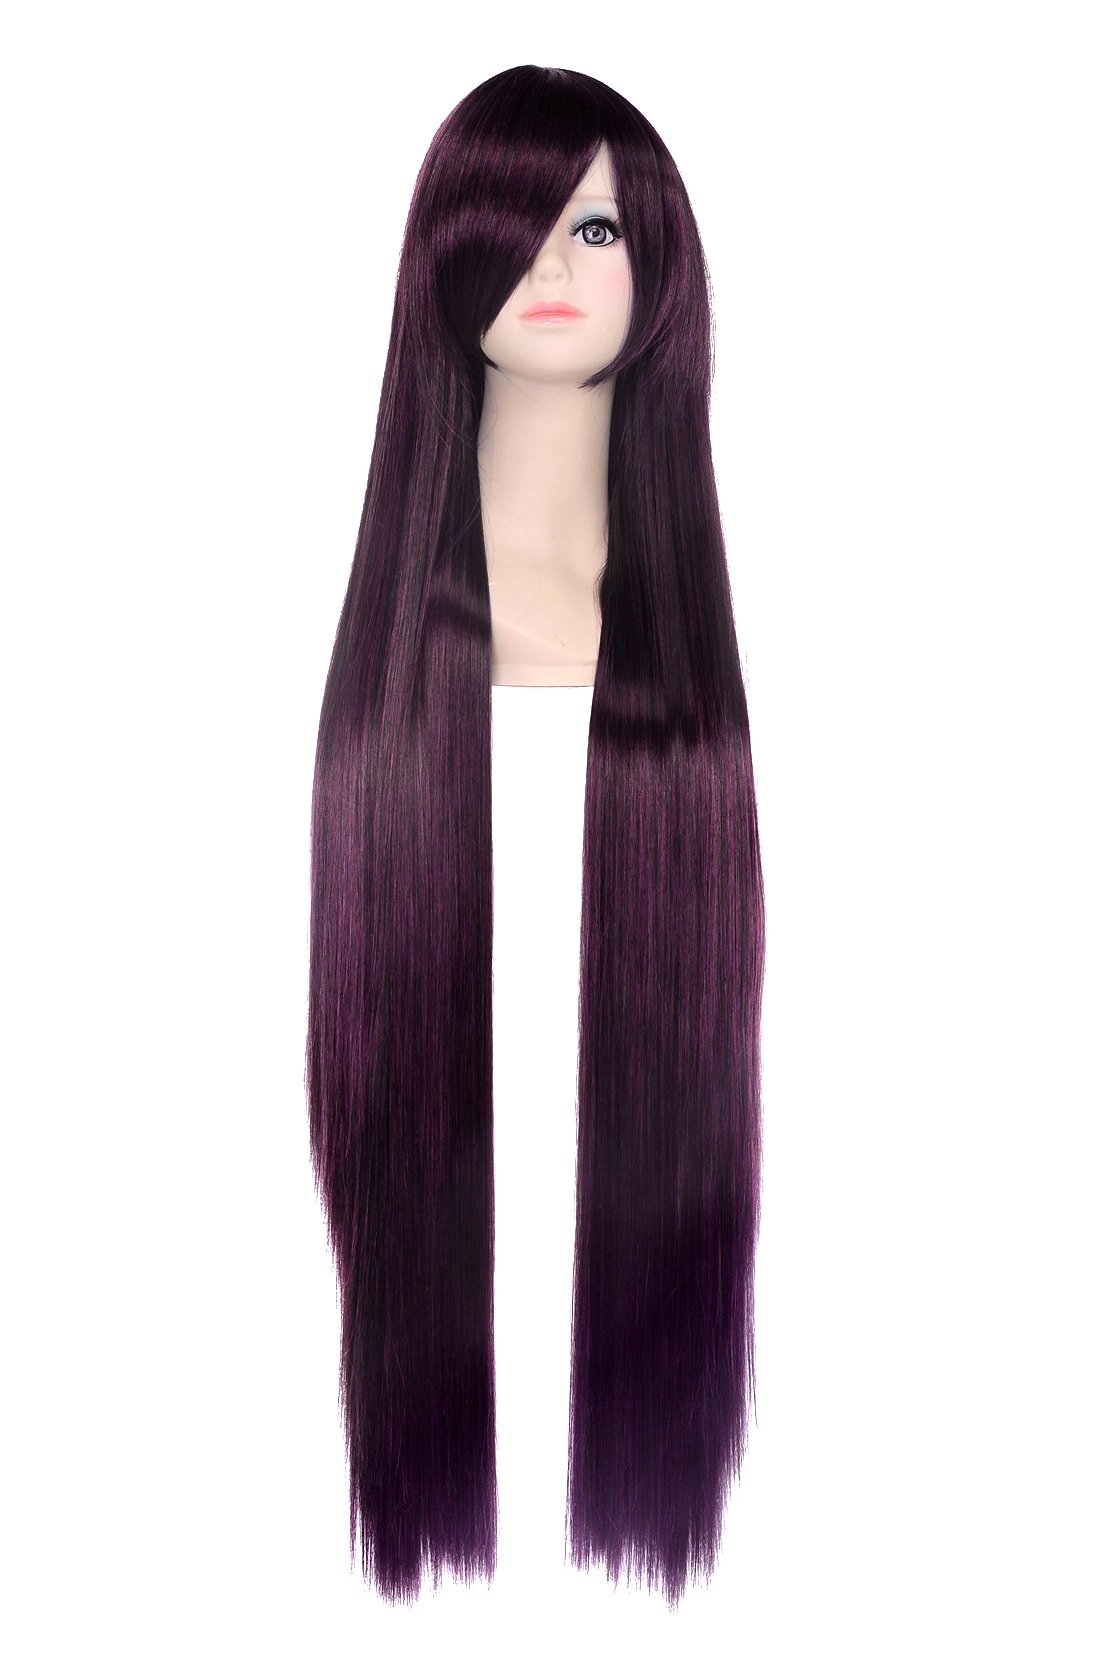 Icoser 100cm Long Straight Synthetic Hair Anime Cosplay Party Wigs for Women (Dark Purple)